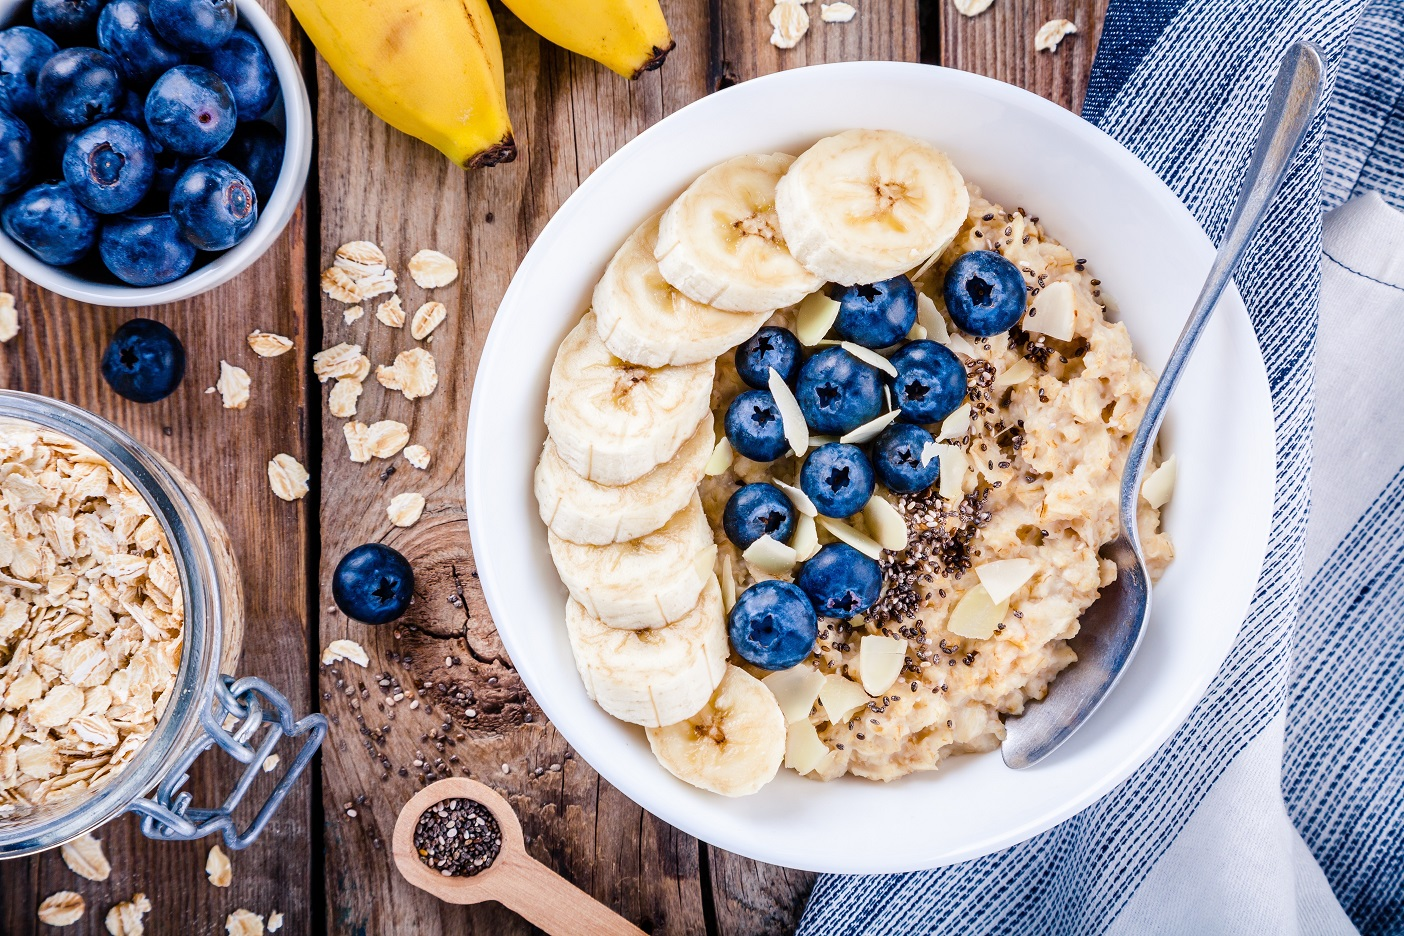 Remember to add some fruits to your oatmeal!